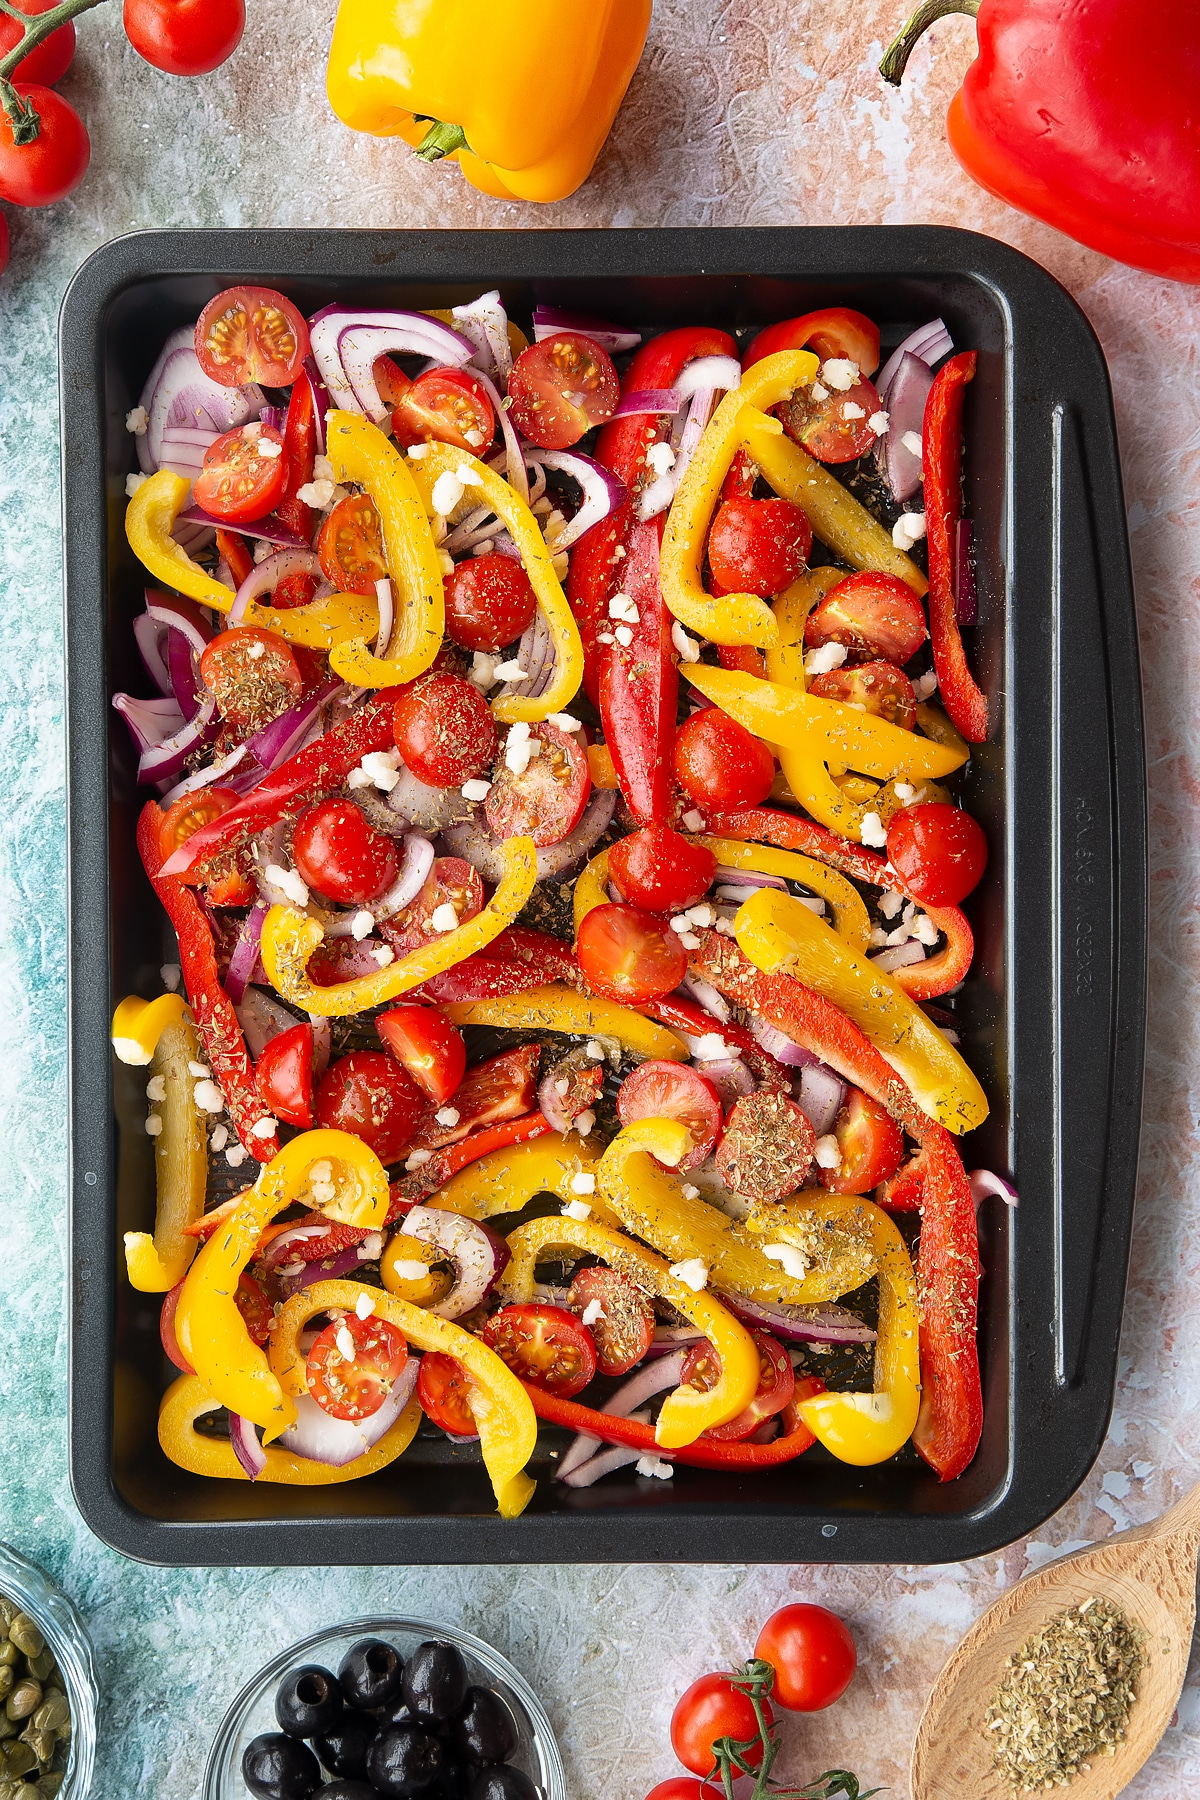 Halved cherry tomatoes, sliced chopped peppers and sliced onions with garlic, olive oil and oregano in an oven tray. Ingredients to make vegan lentil salad surround the tray.